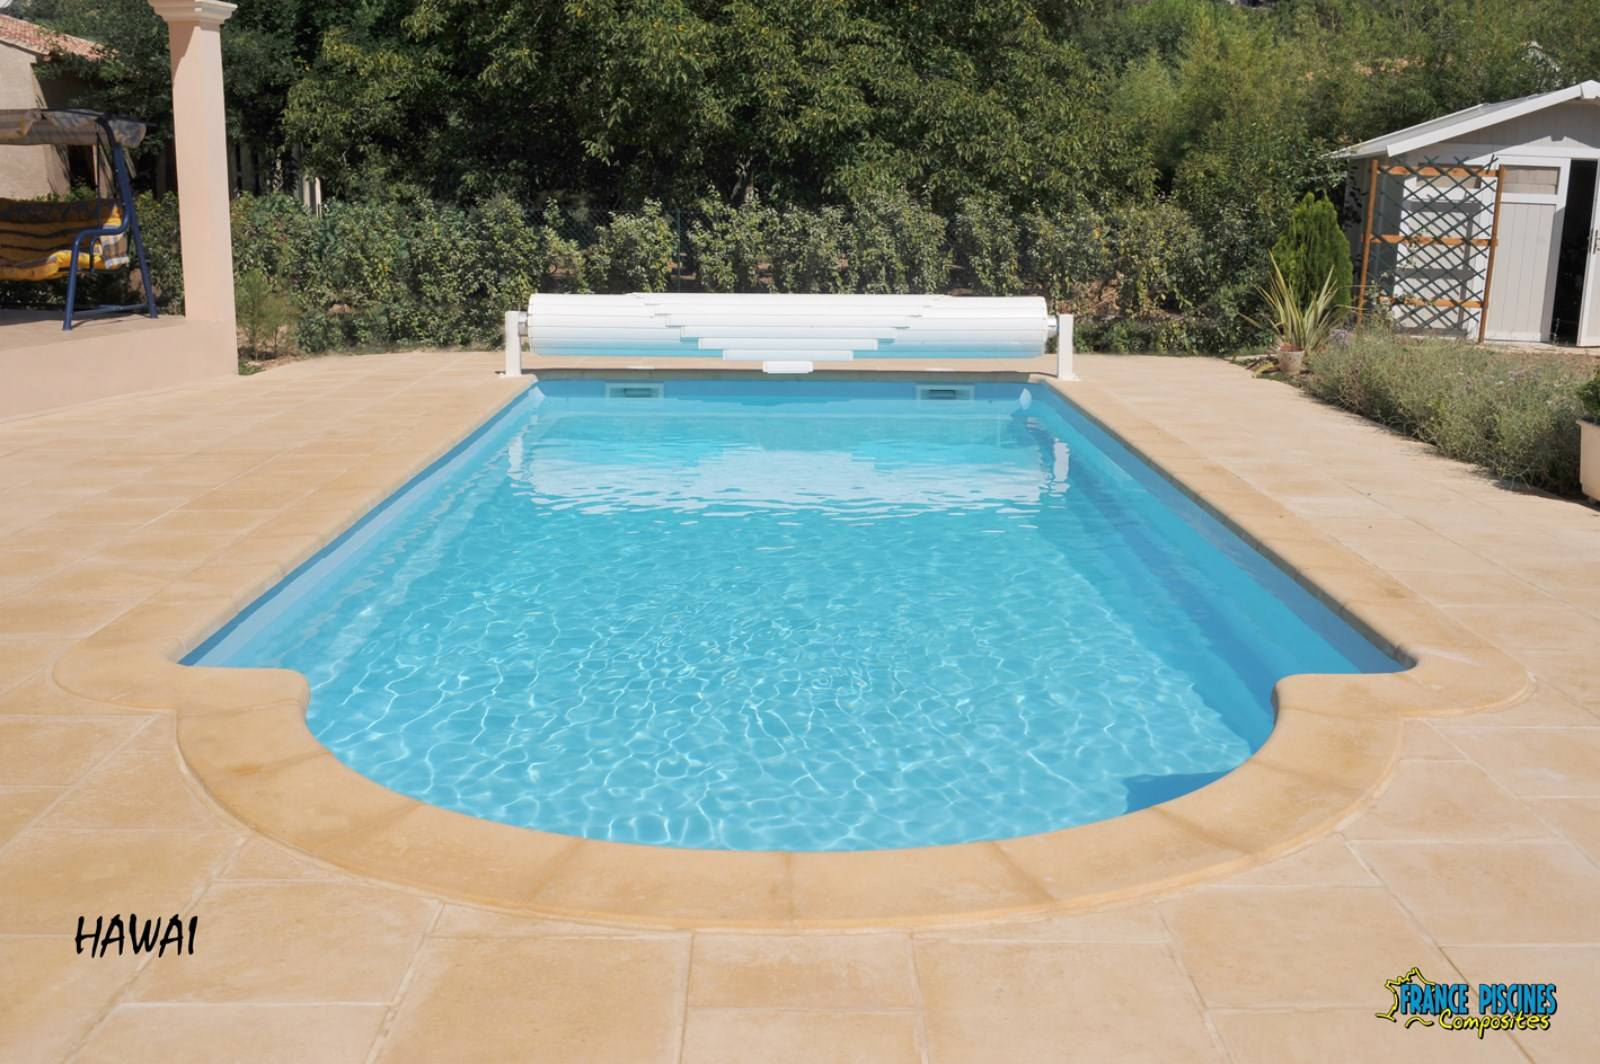 Prix Piscine 9x4 Of Vente Et Pose De Piscine Enterr E Coque Polyester